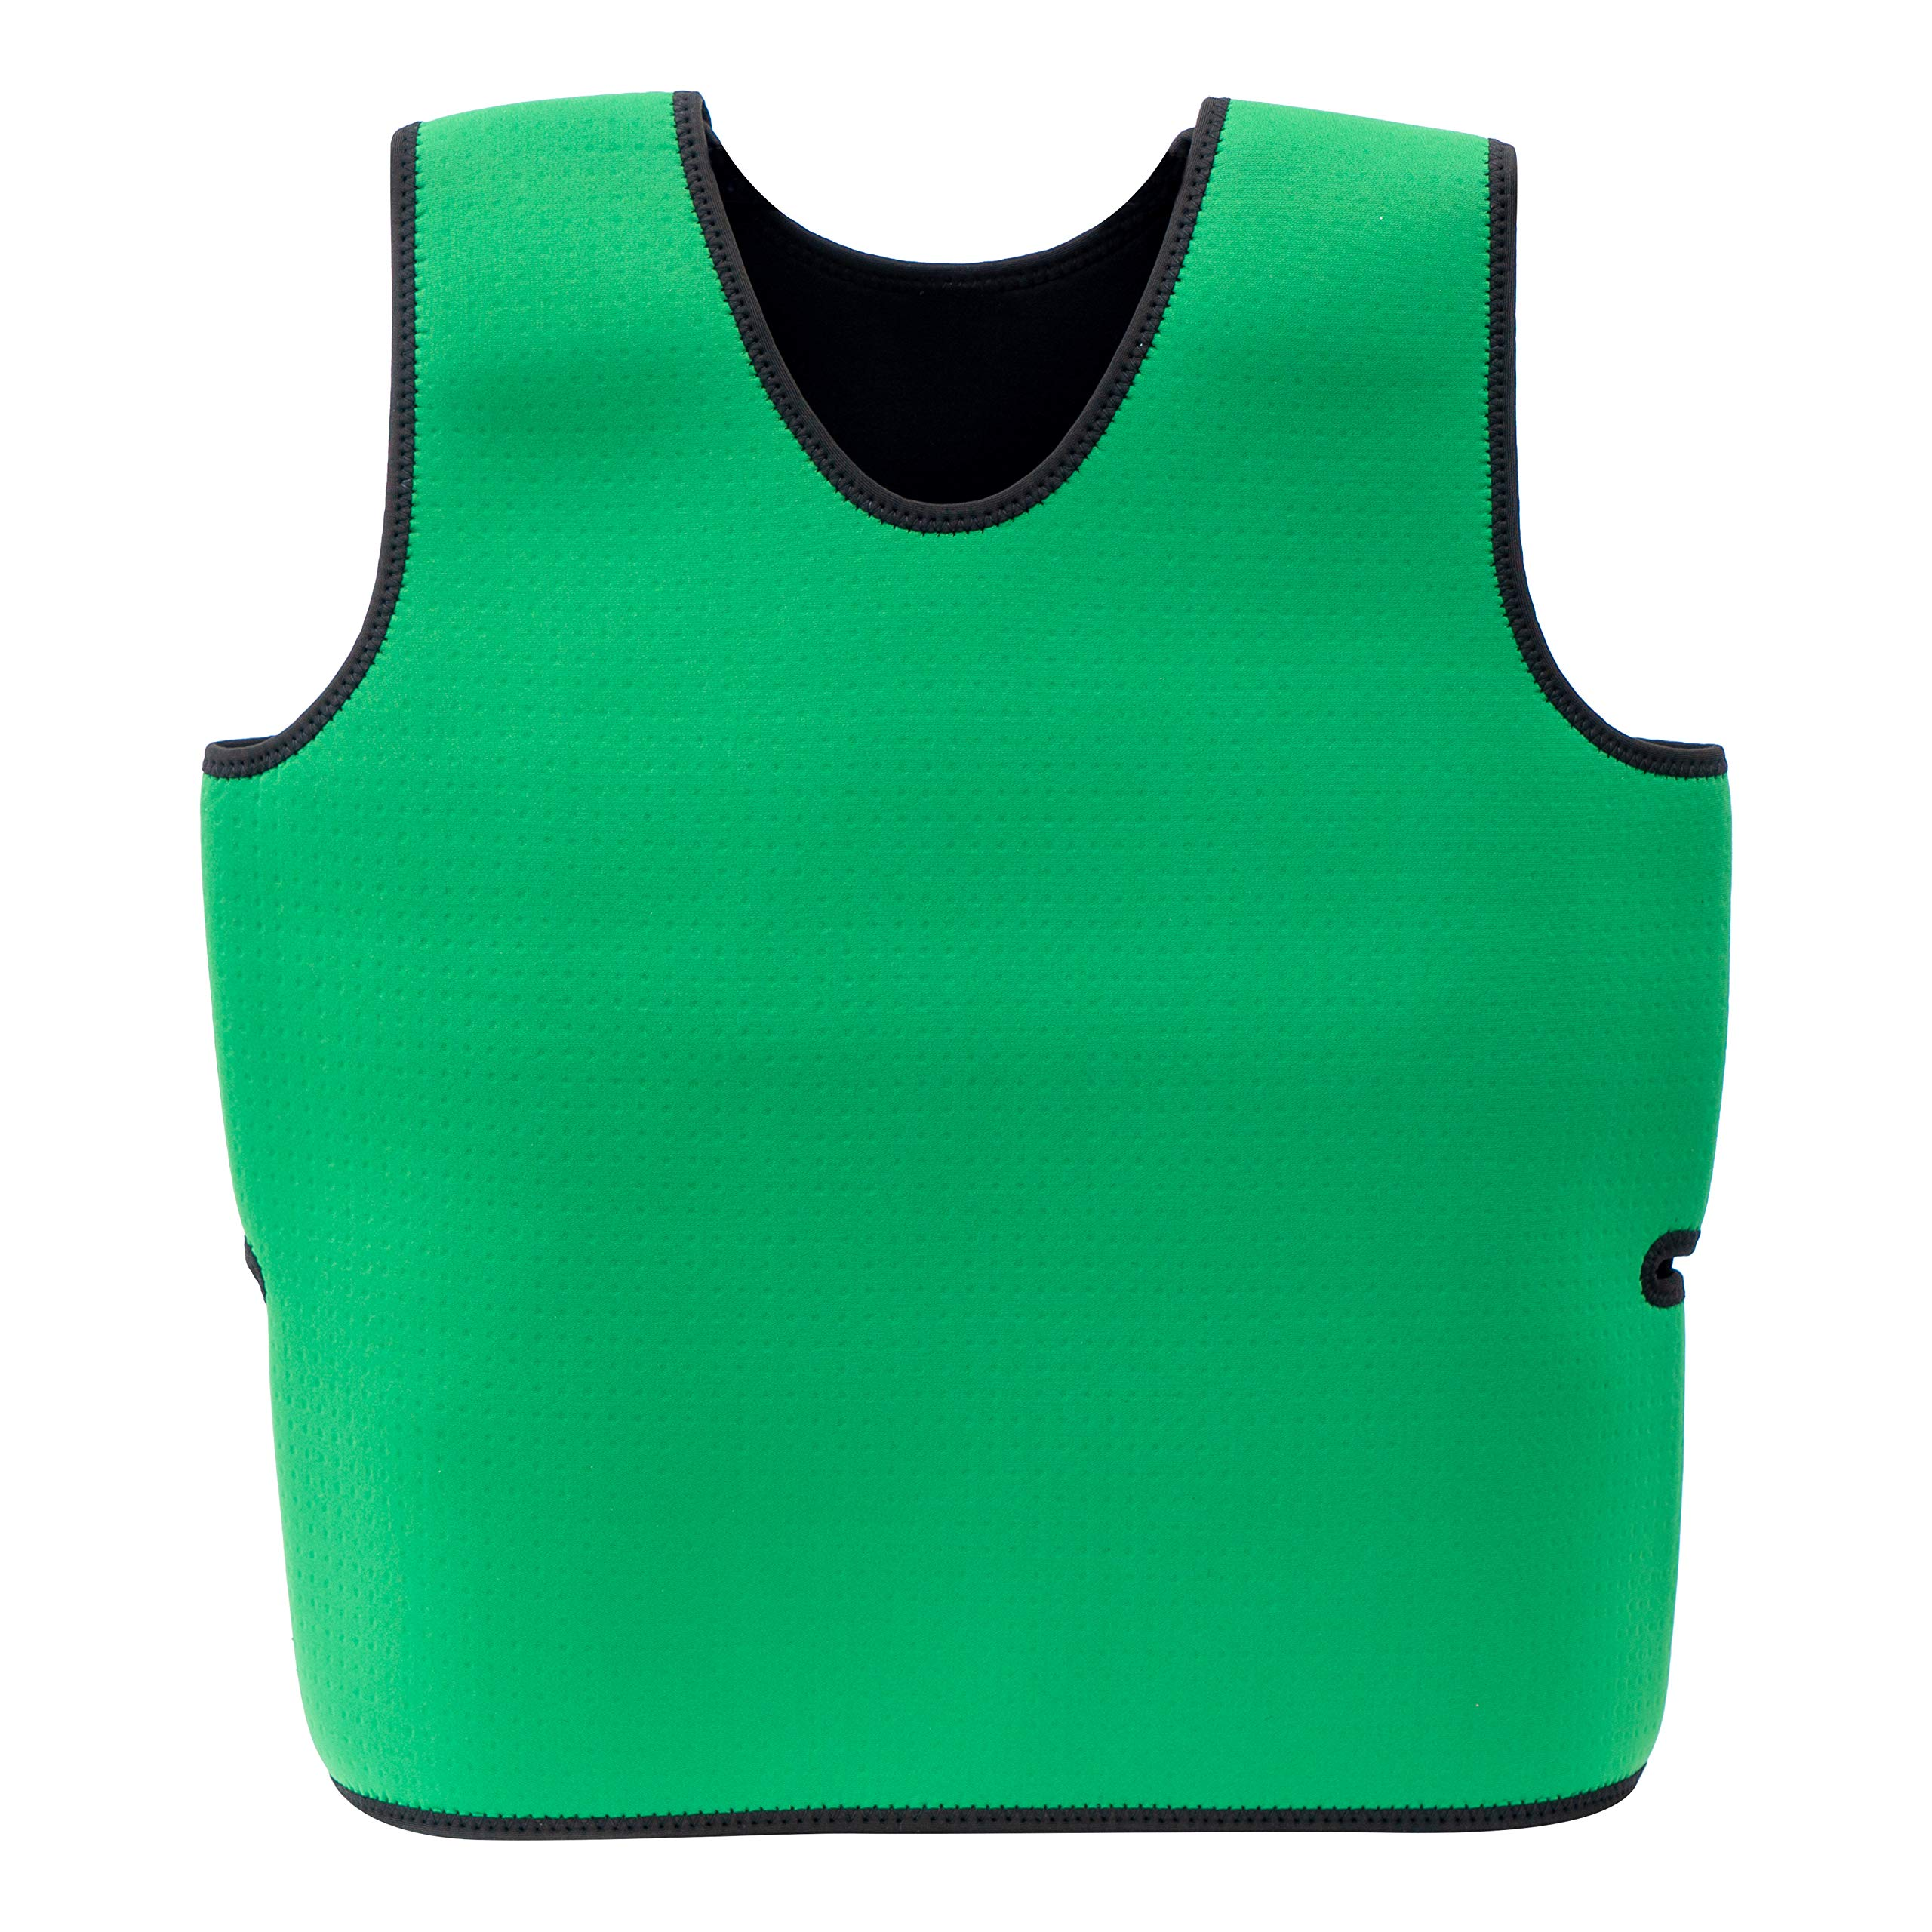 Special Supplies Sensory Compression Vest Deep Pressure Comfort for Autism, Hyperactivity, Mood Processing Disorders, Breathable, Form-Fitting, Kids and Adults (Green, Small 17x30 inches)